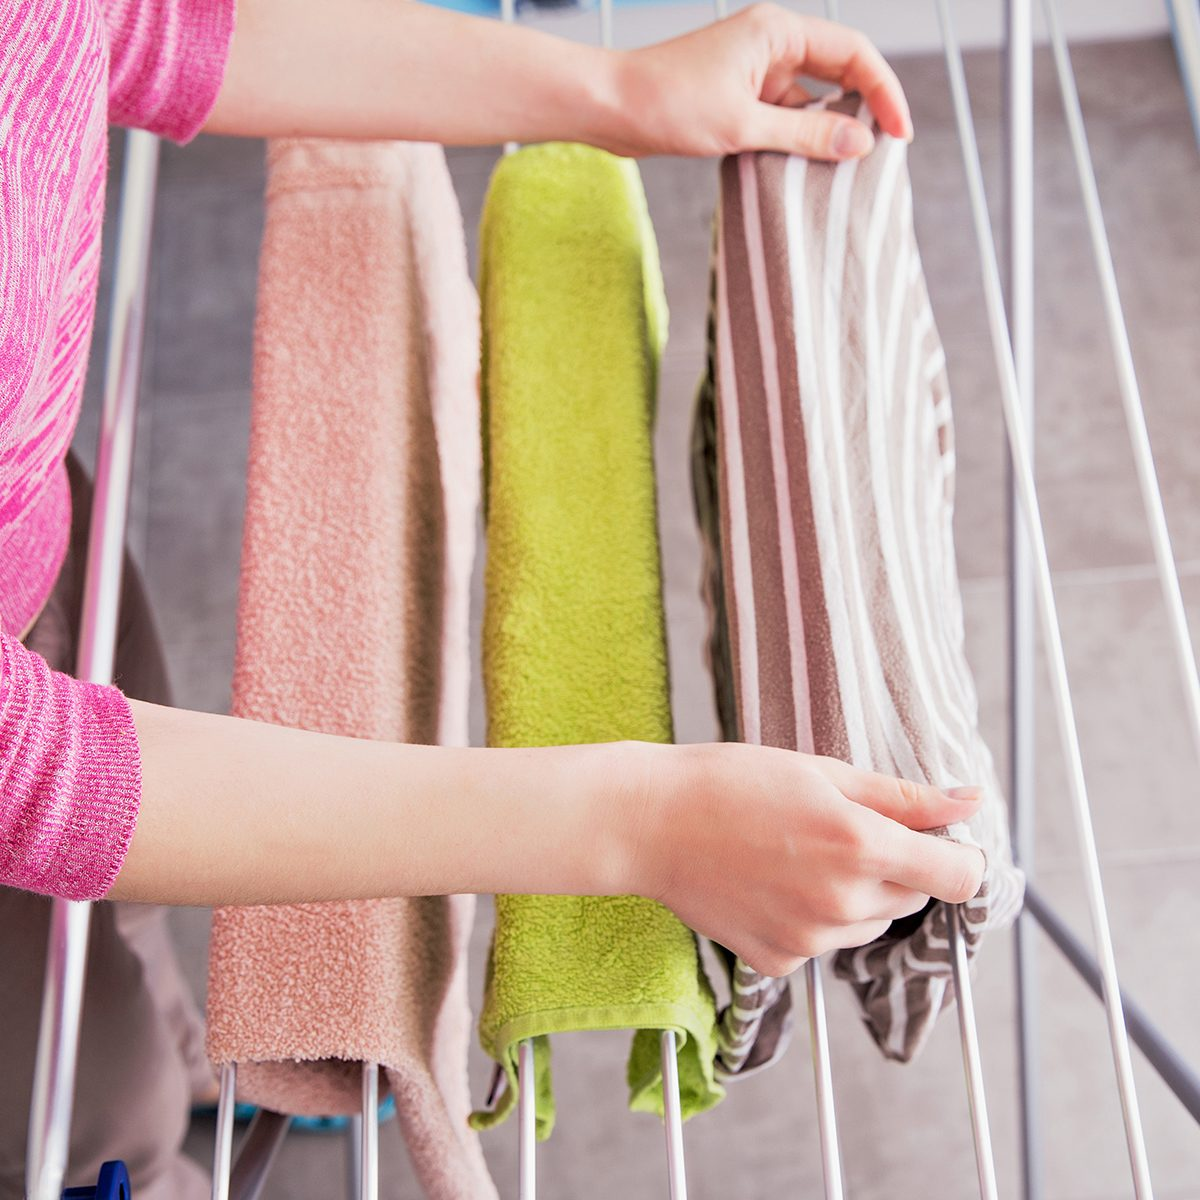 A young woman hangs clothes on the dryer for clothes after washing in a washing machine. Device for drying laundry after washing.; Shutterstock ID 637356079; Job (TFH, TOH, RD, BNB, CWM, CM): TOH